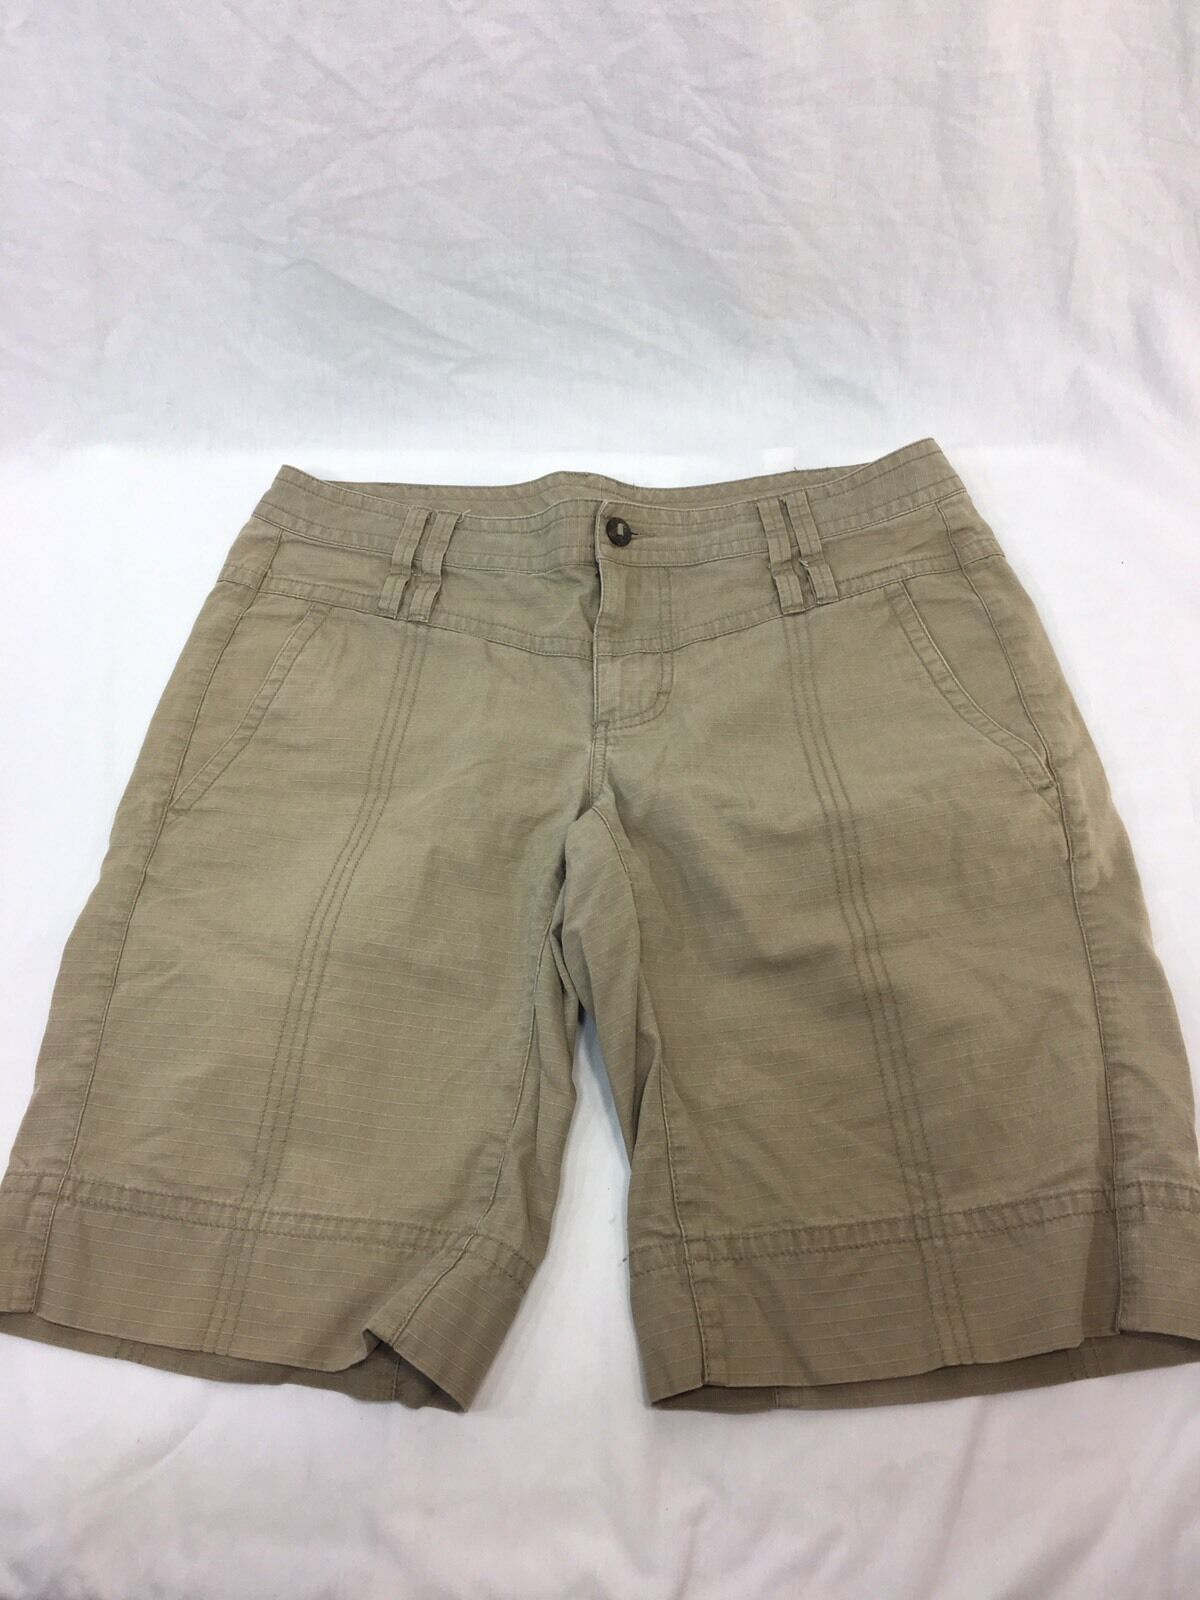 THE NORTH FACE Womens 10 HIKING GUIDE COTTON SHORTS KHAKI EUC